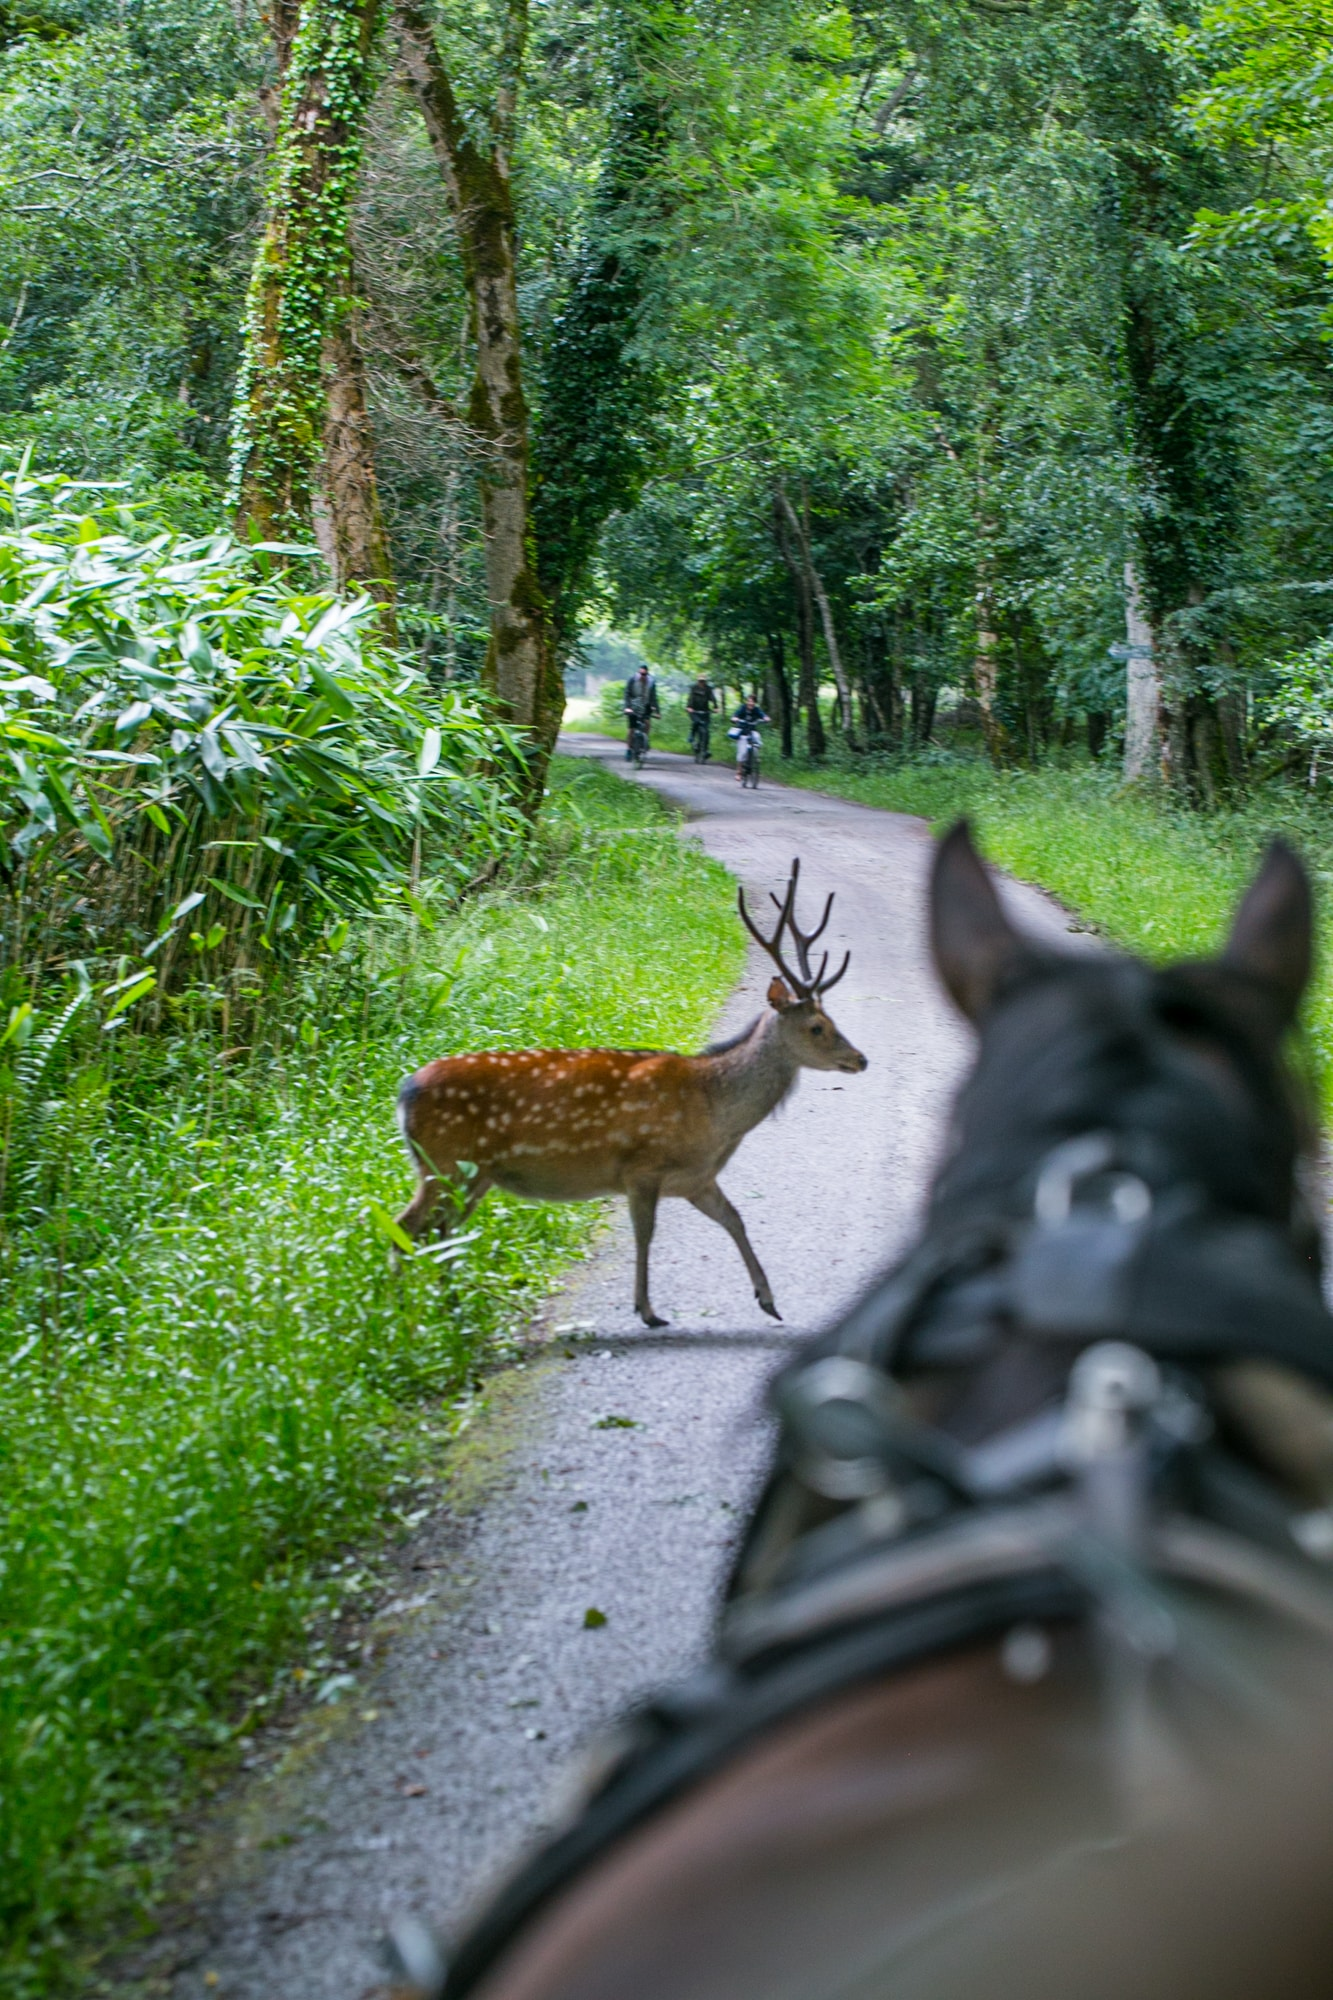 Small deer, Killarney National Park, Ireland